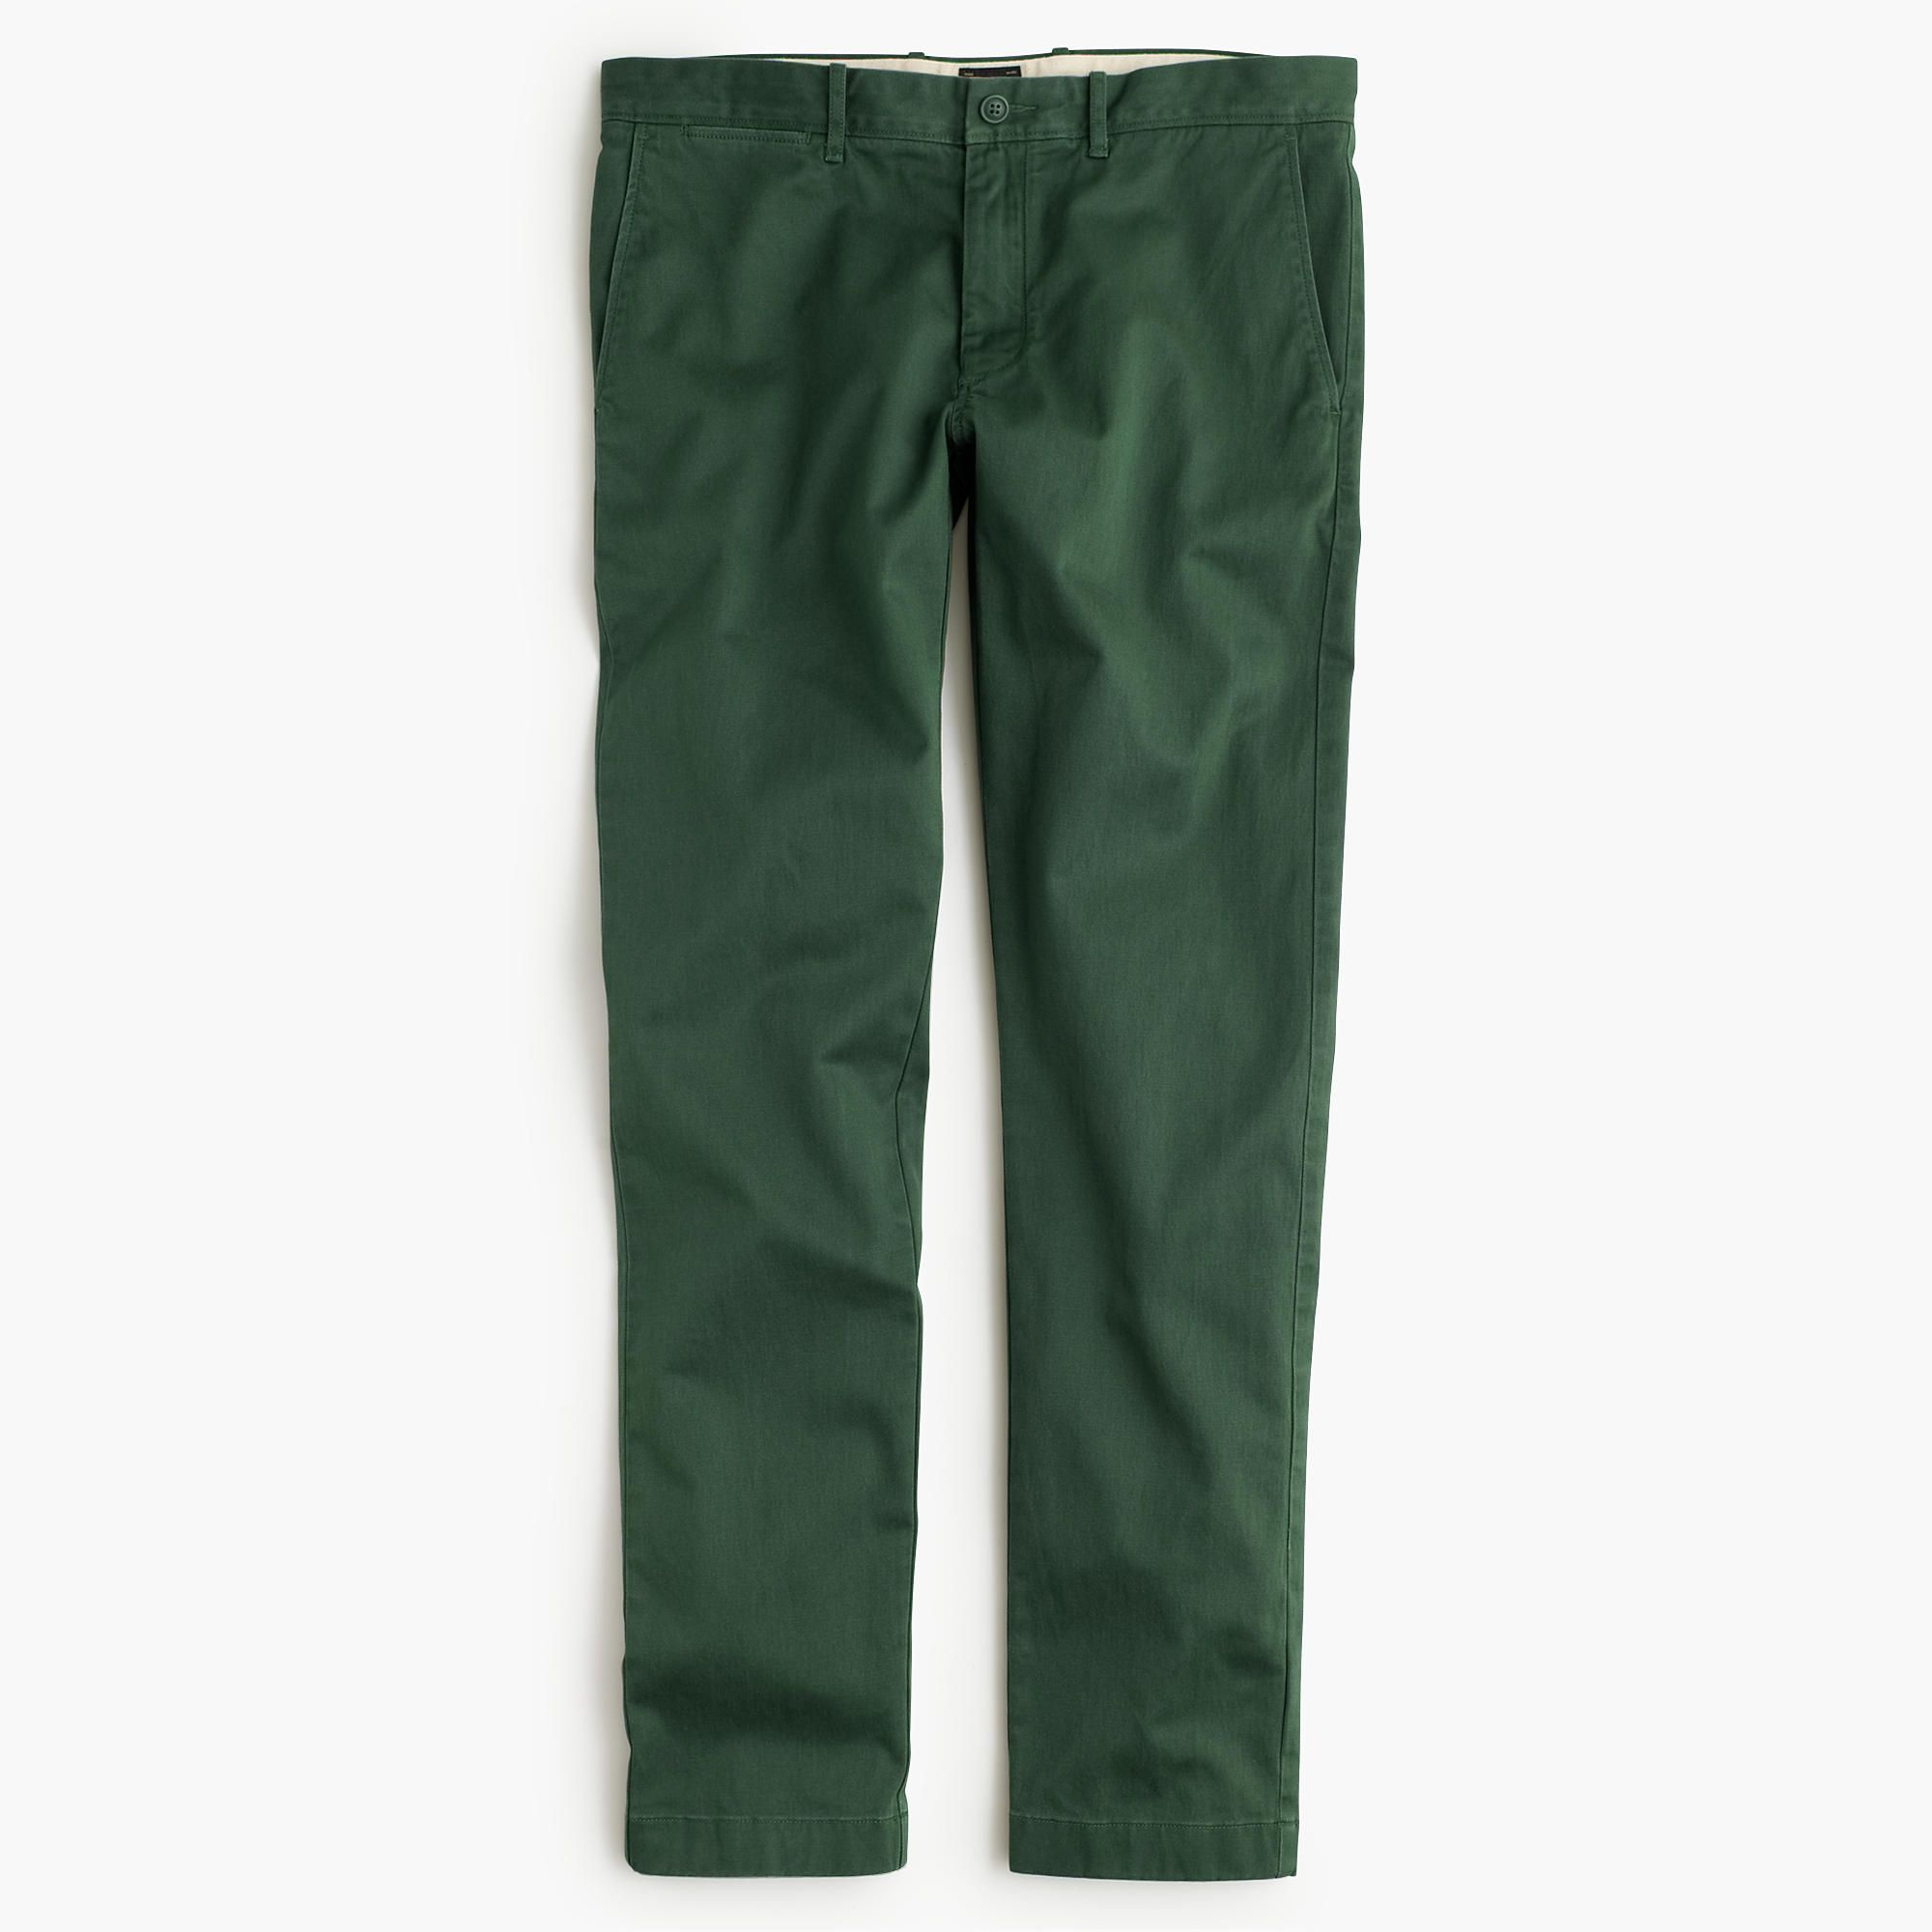 484 slimfit stretch chino pant for men stretch chinos